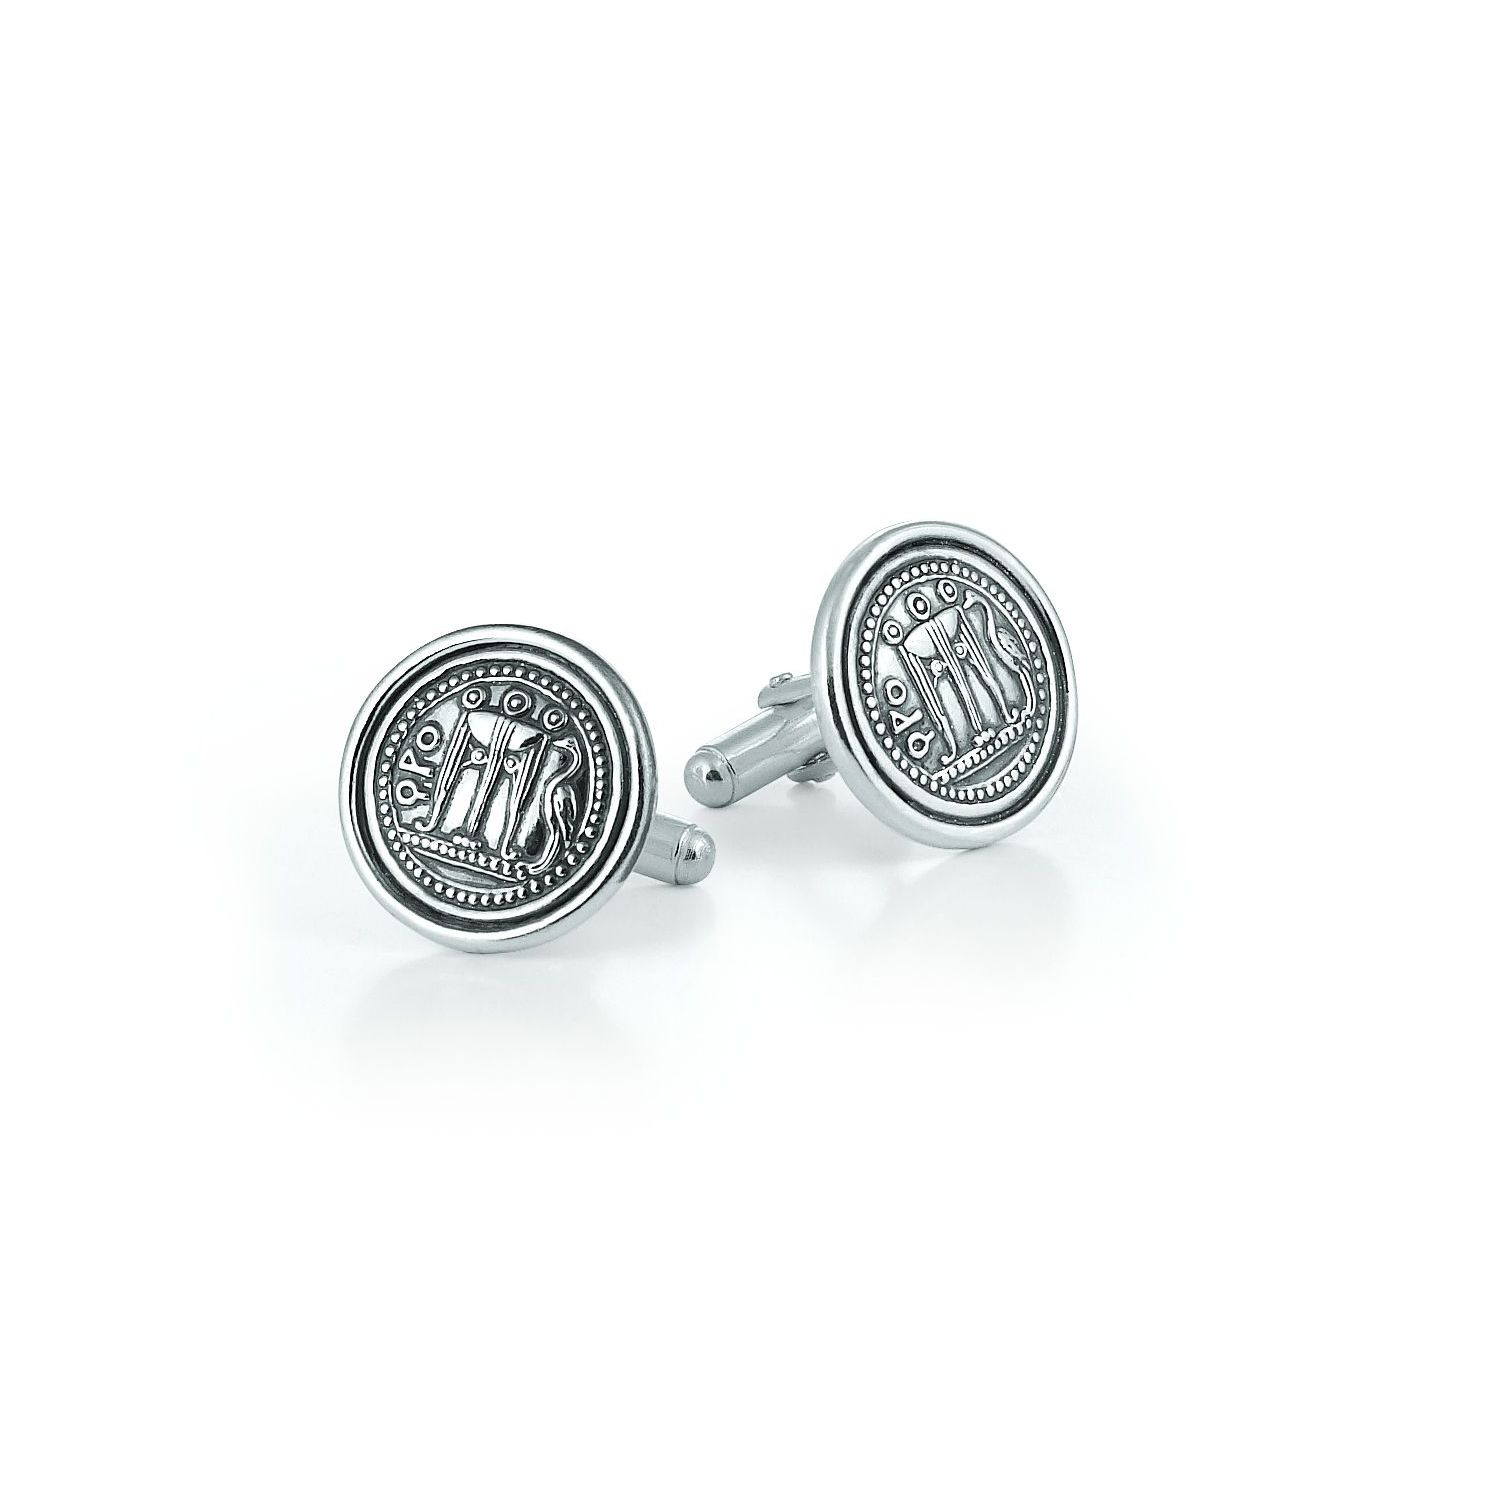 Cufflinks with Coin (40016)